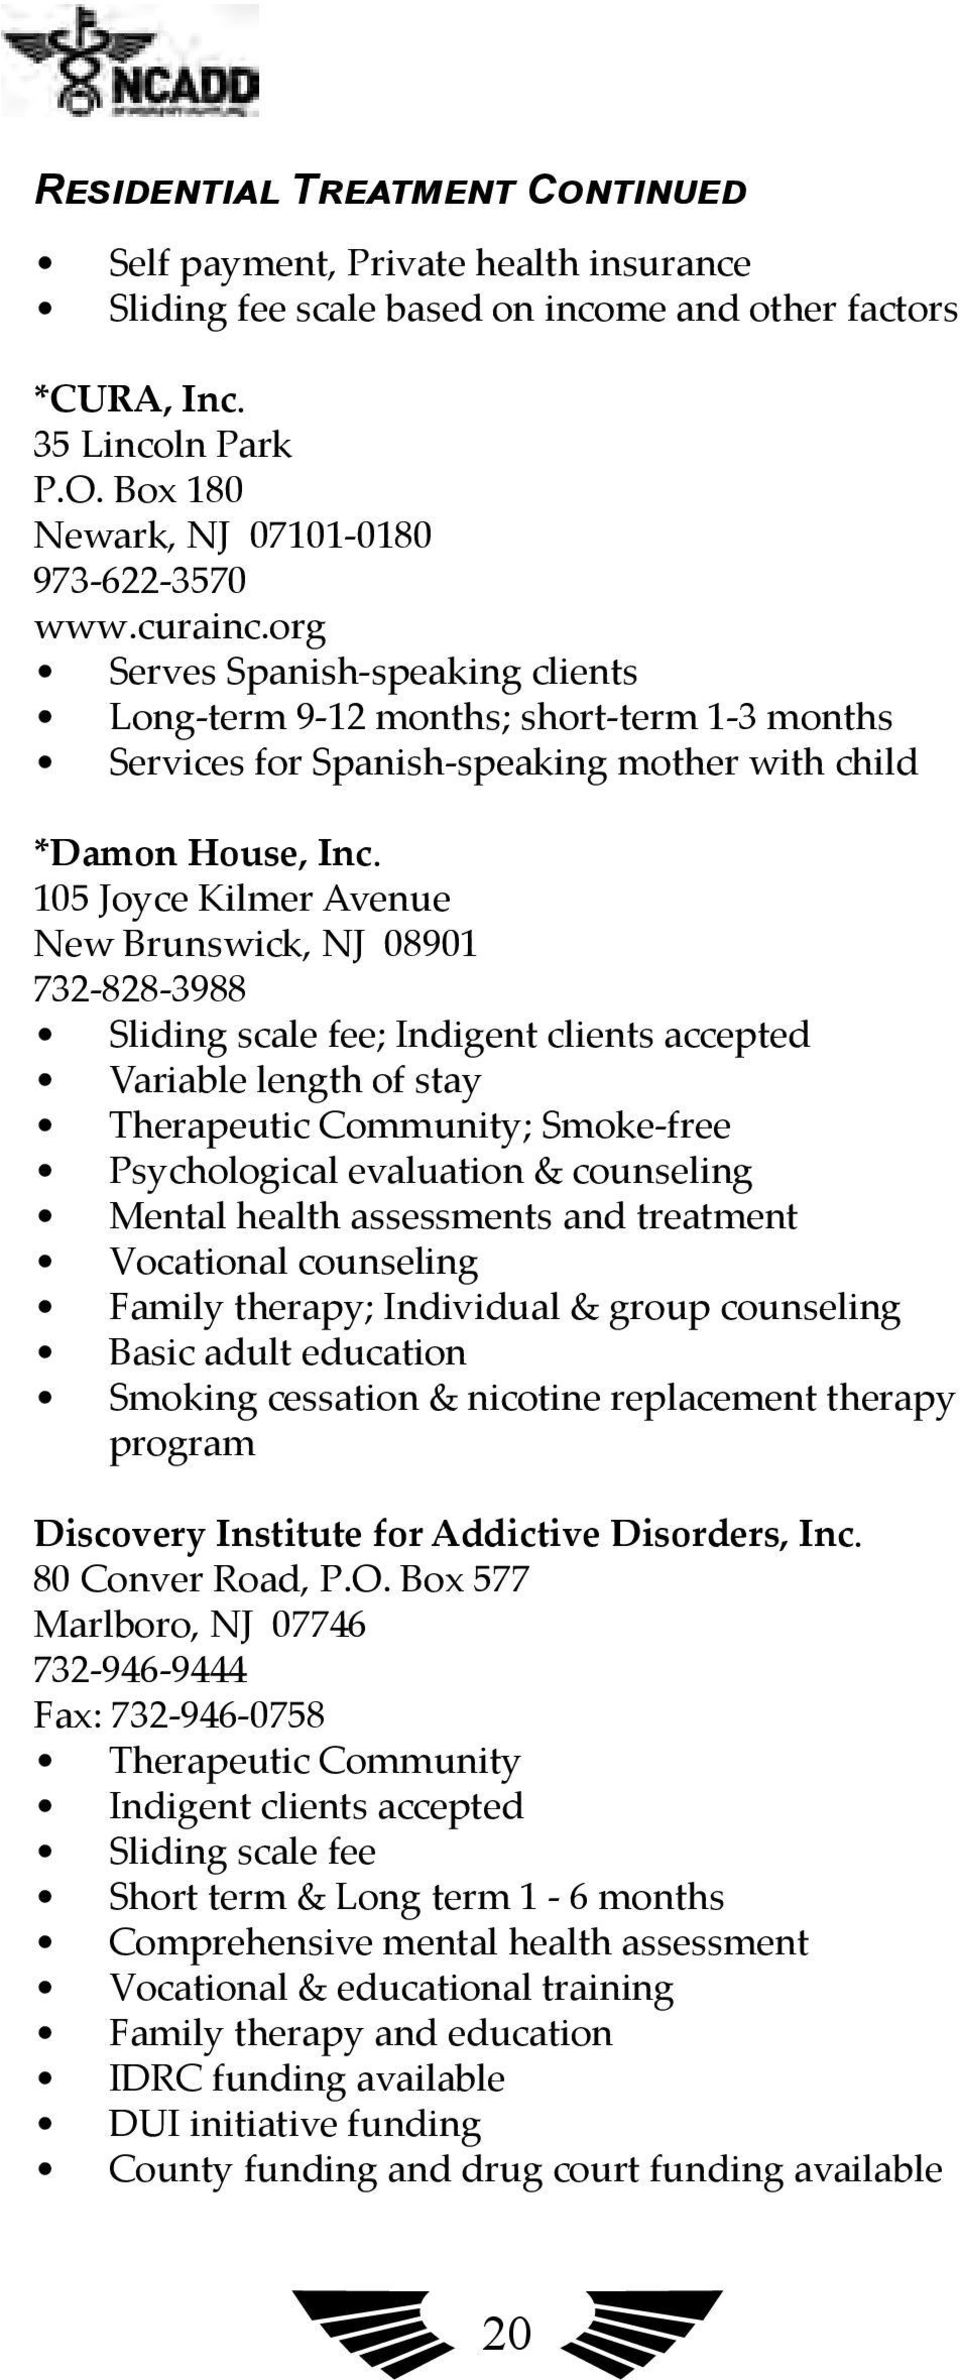 org Serves Spanish-speaking clients Long-term 9-12 months; short-term 1-3 months Services for Spanish-speaking mother with child *Damon House, Inc.